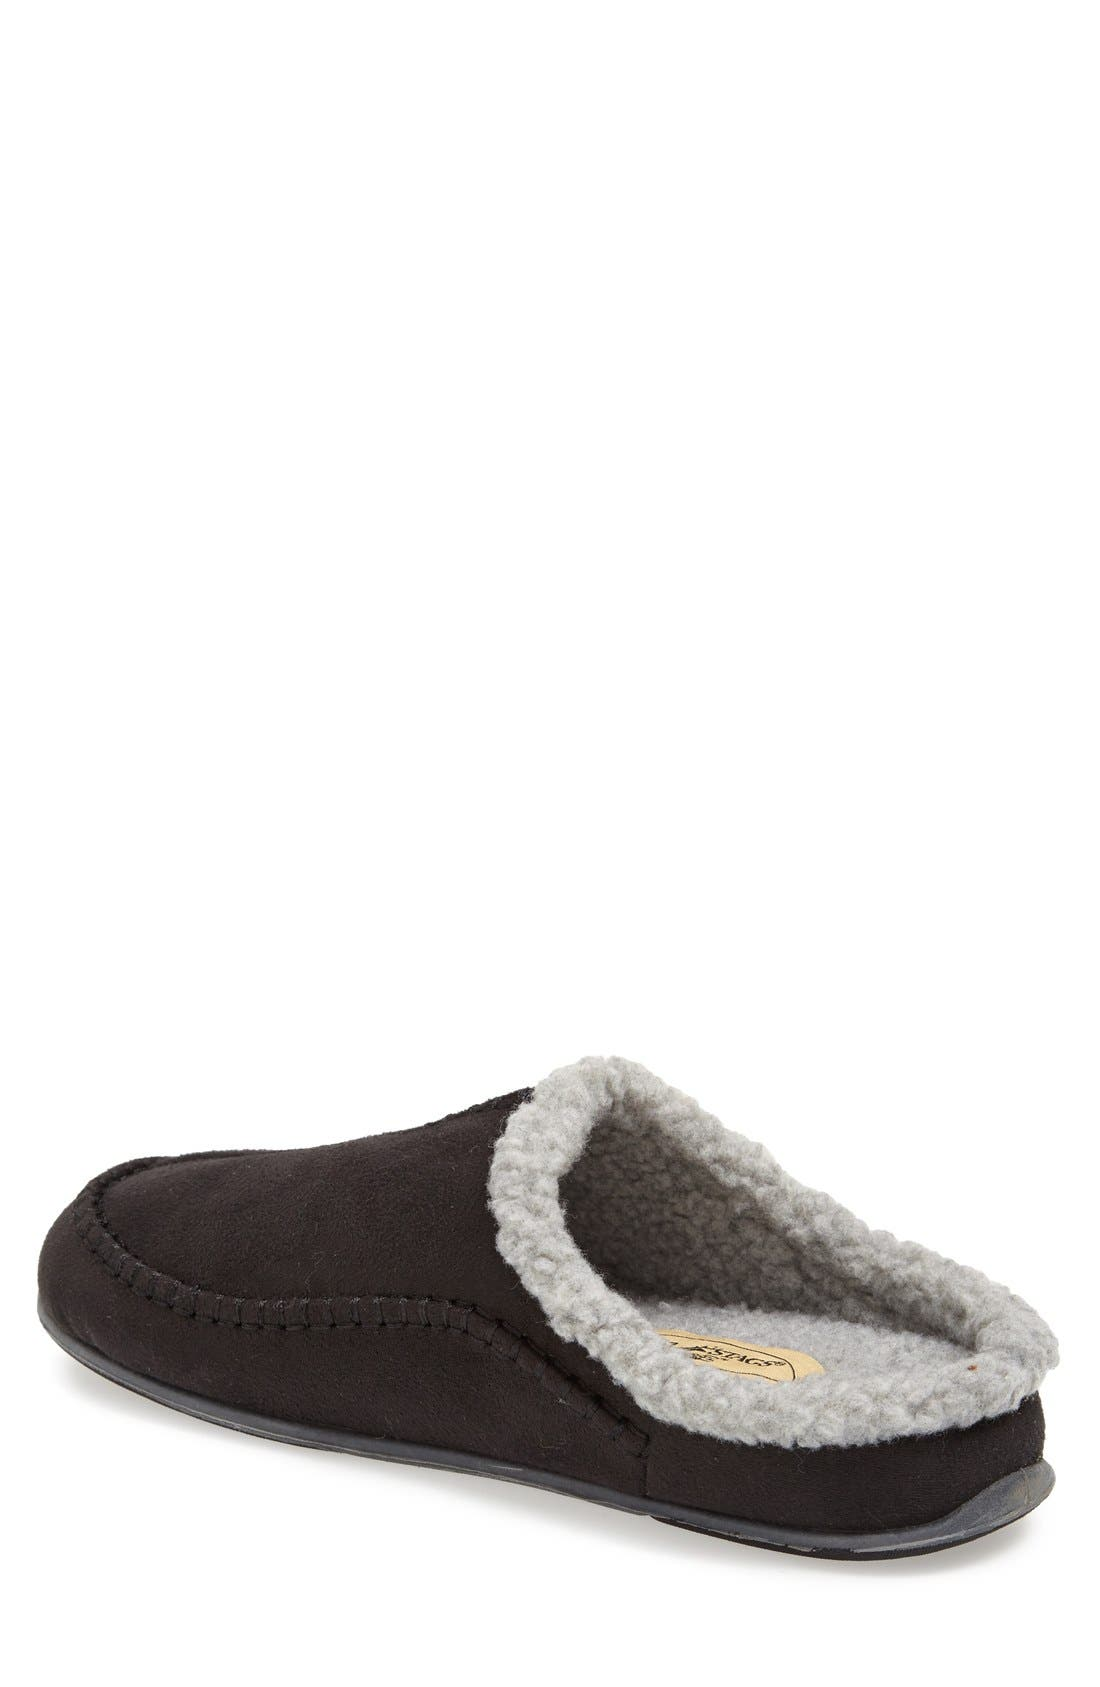 'Nordic' Slipper,                             Alternate thumbnail 2, color,                             Black